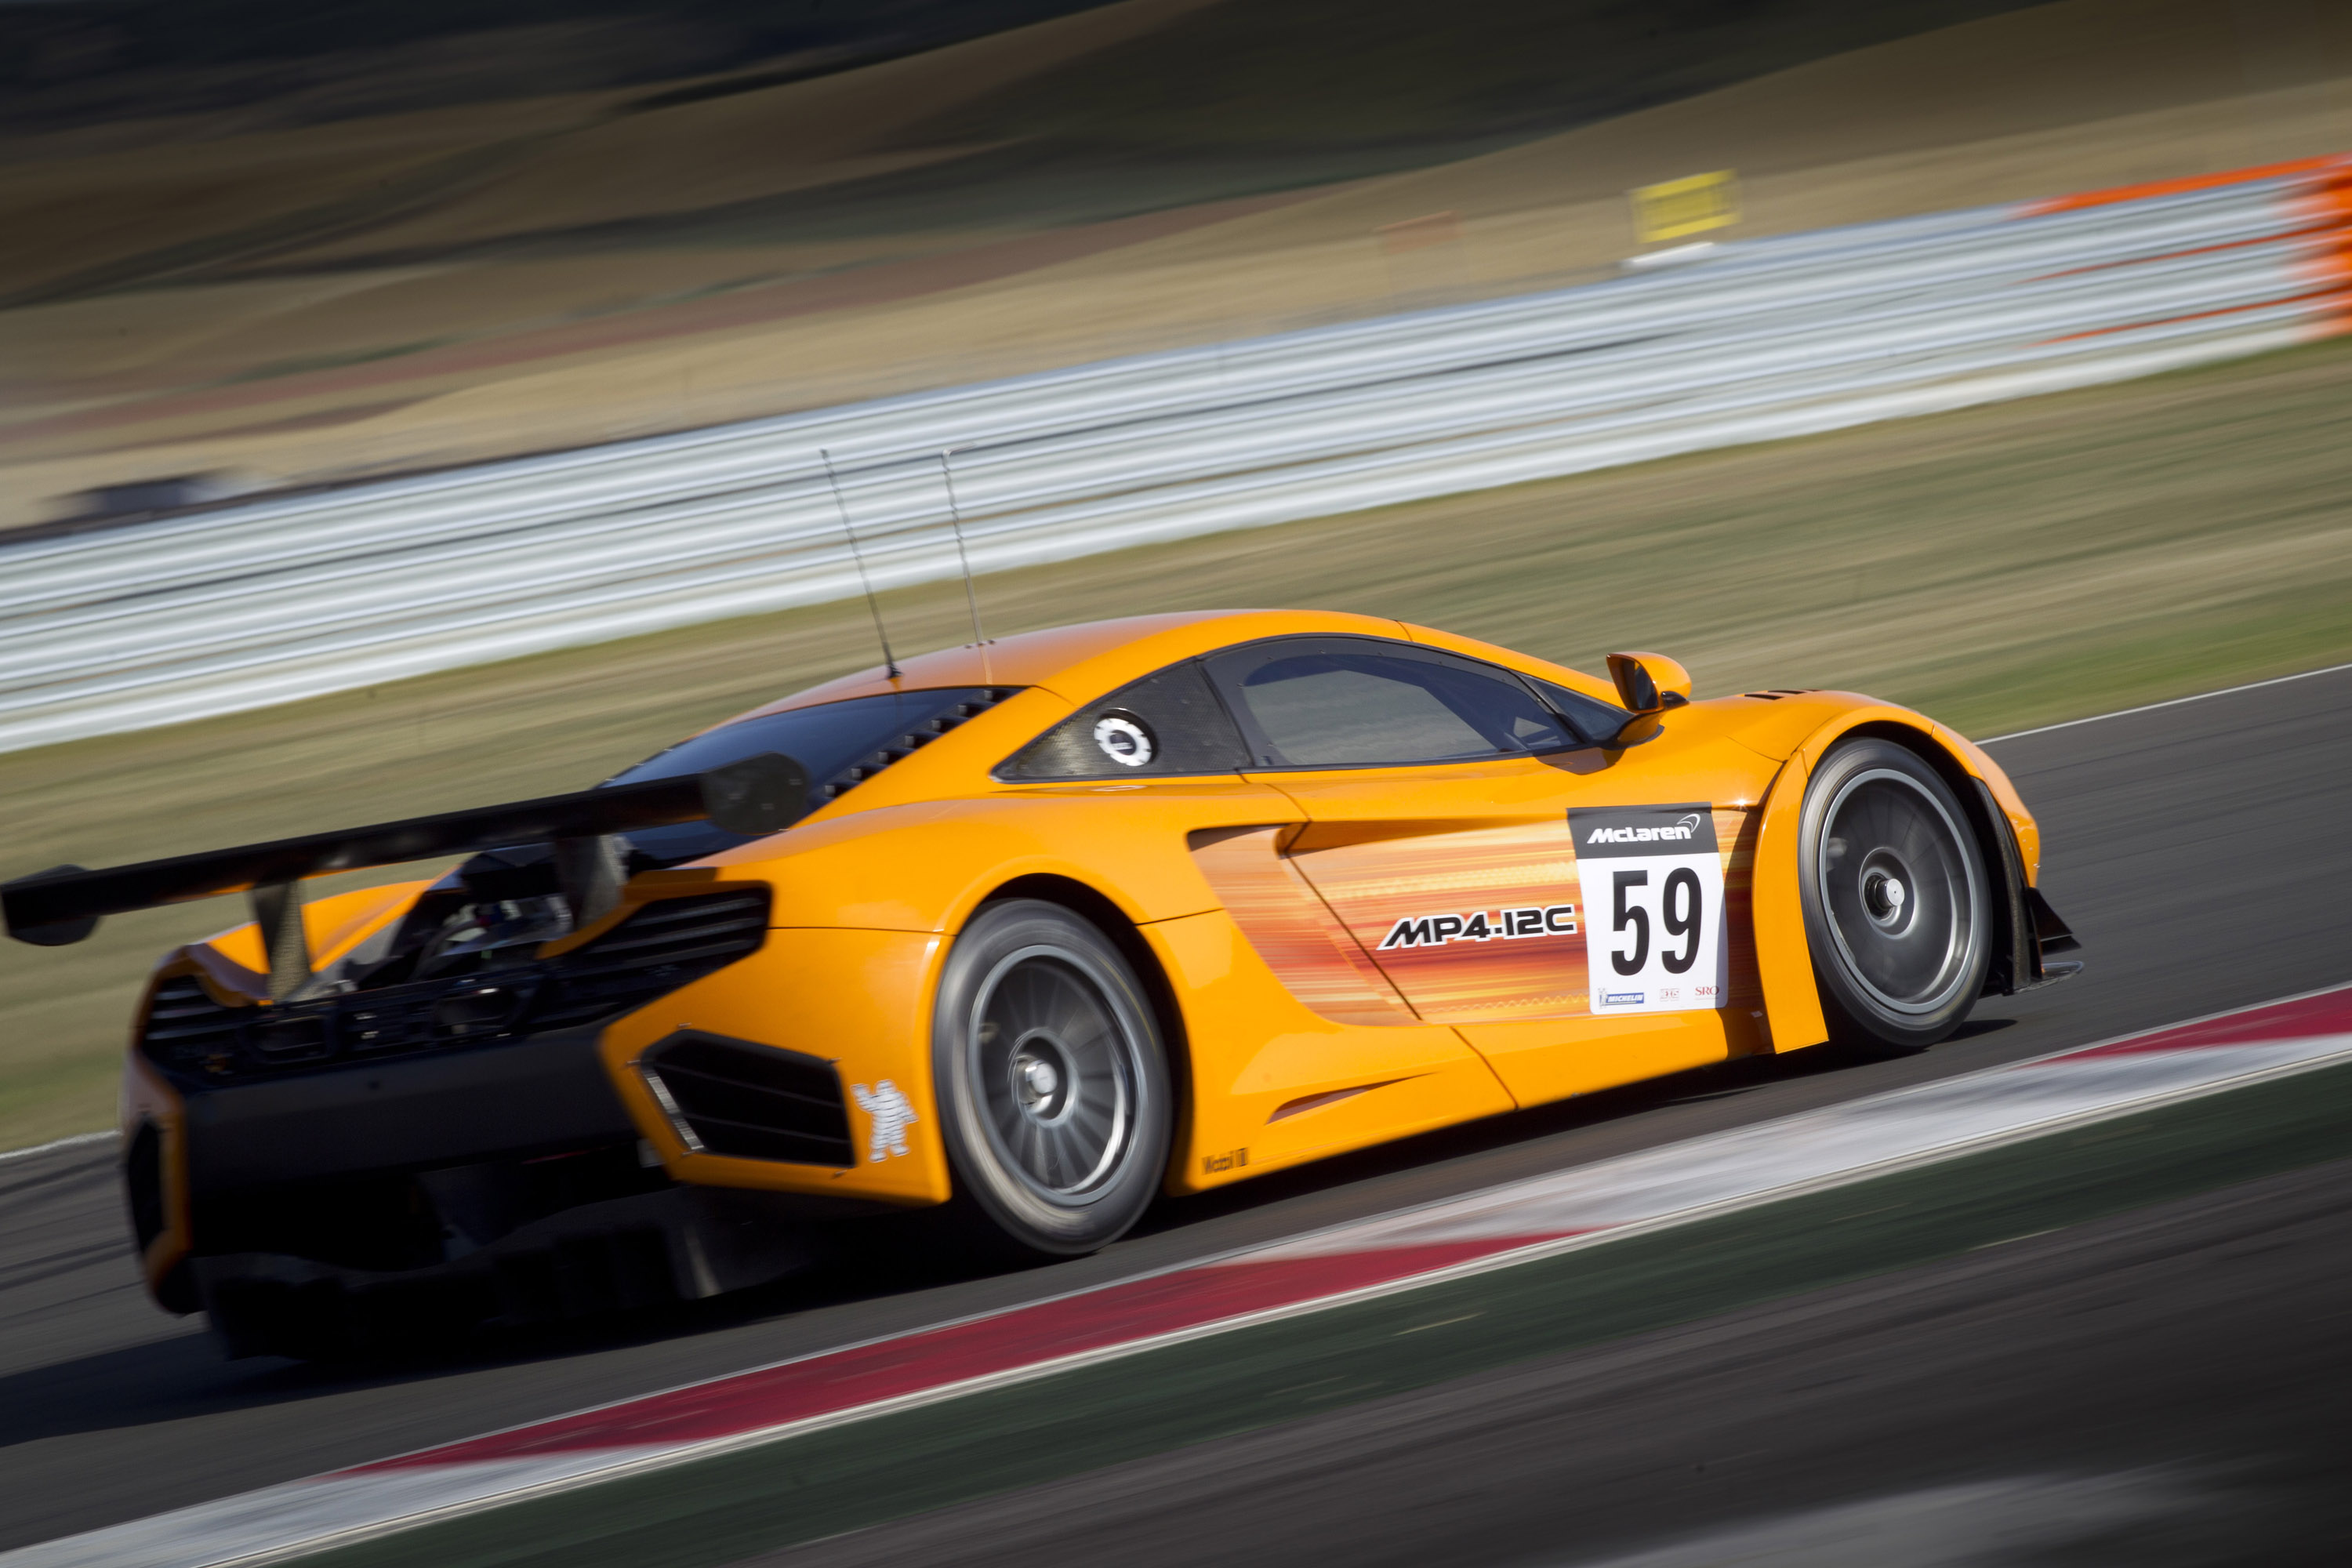 https://www.automobilesreview.com/gallery/mclaren-mp4-12c-gt3-race-car/mclaren-mp4-12c-gt3-race-car-04.jpg